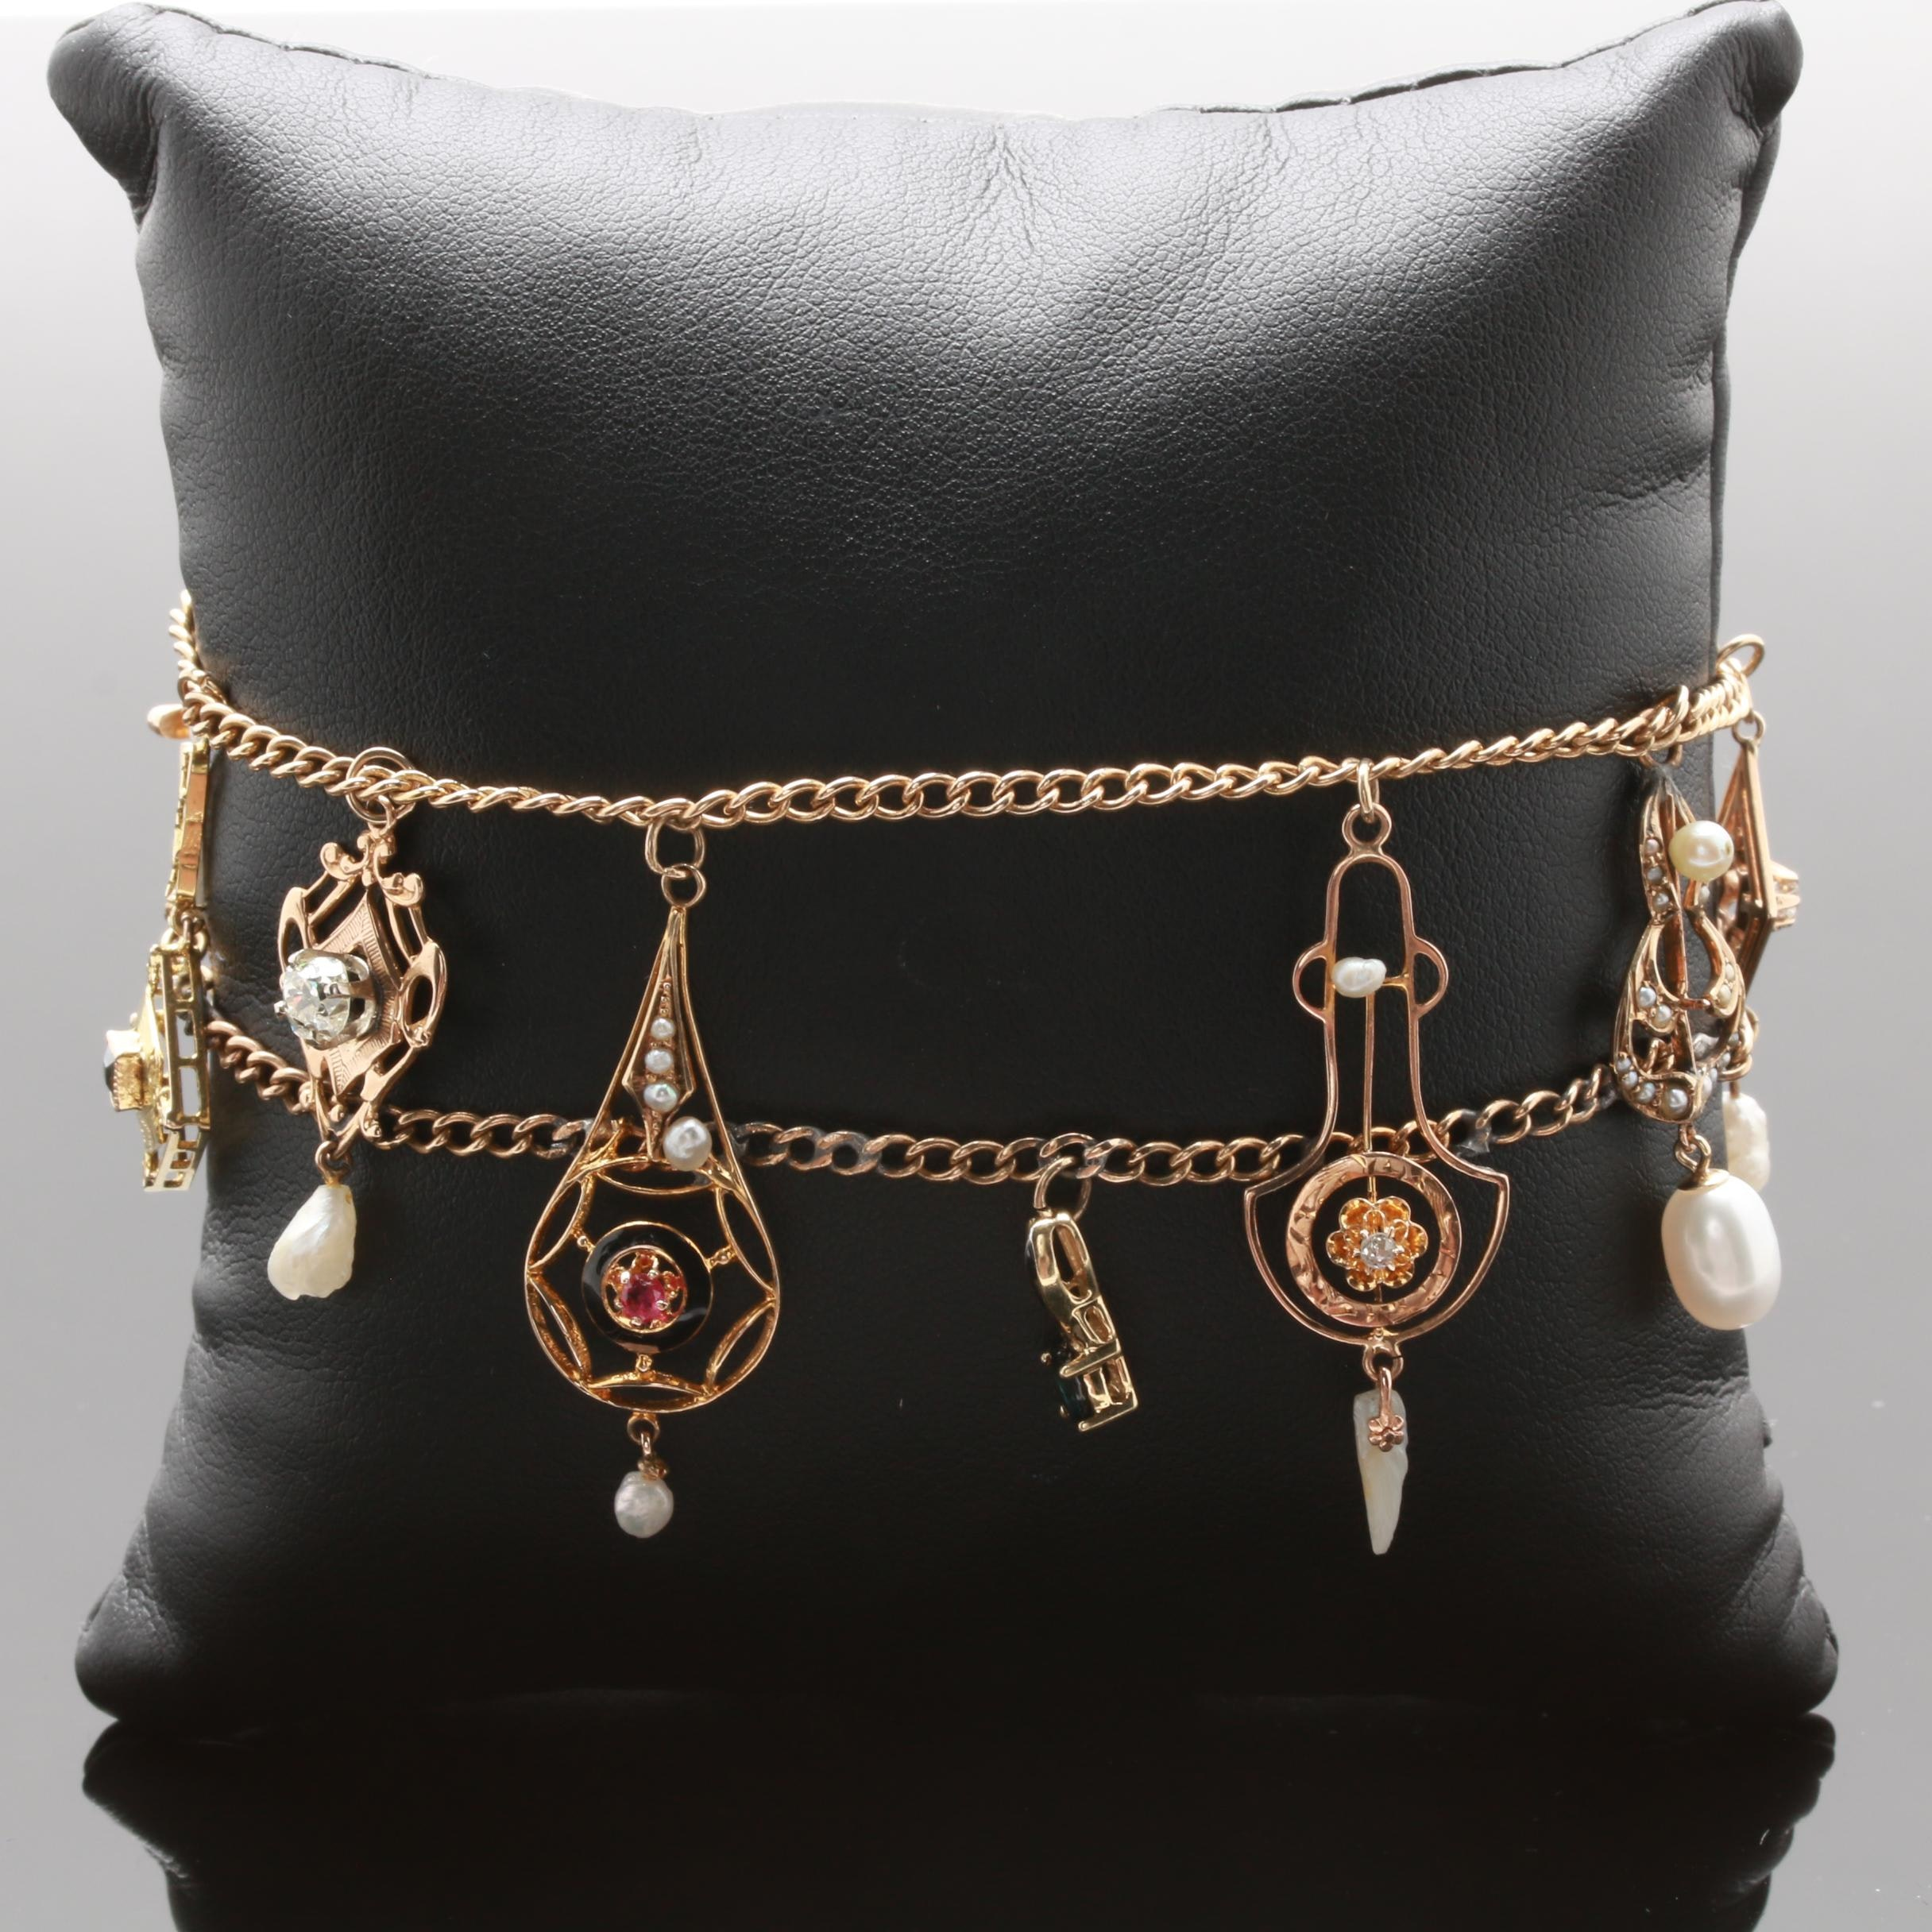 10K Yellow Gold Diamond and Gemstone Bracelet with Vintage Pendant Charms